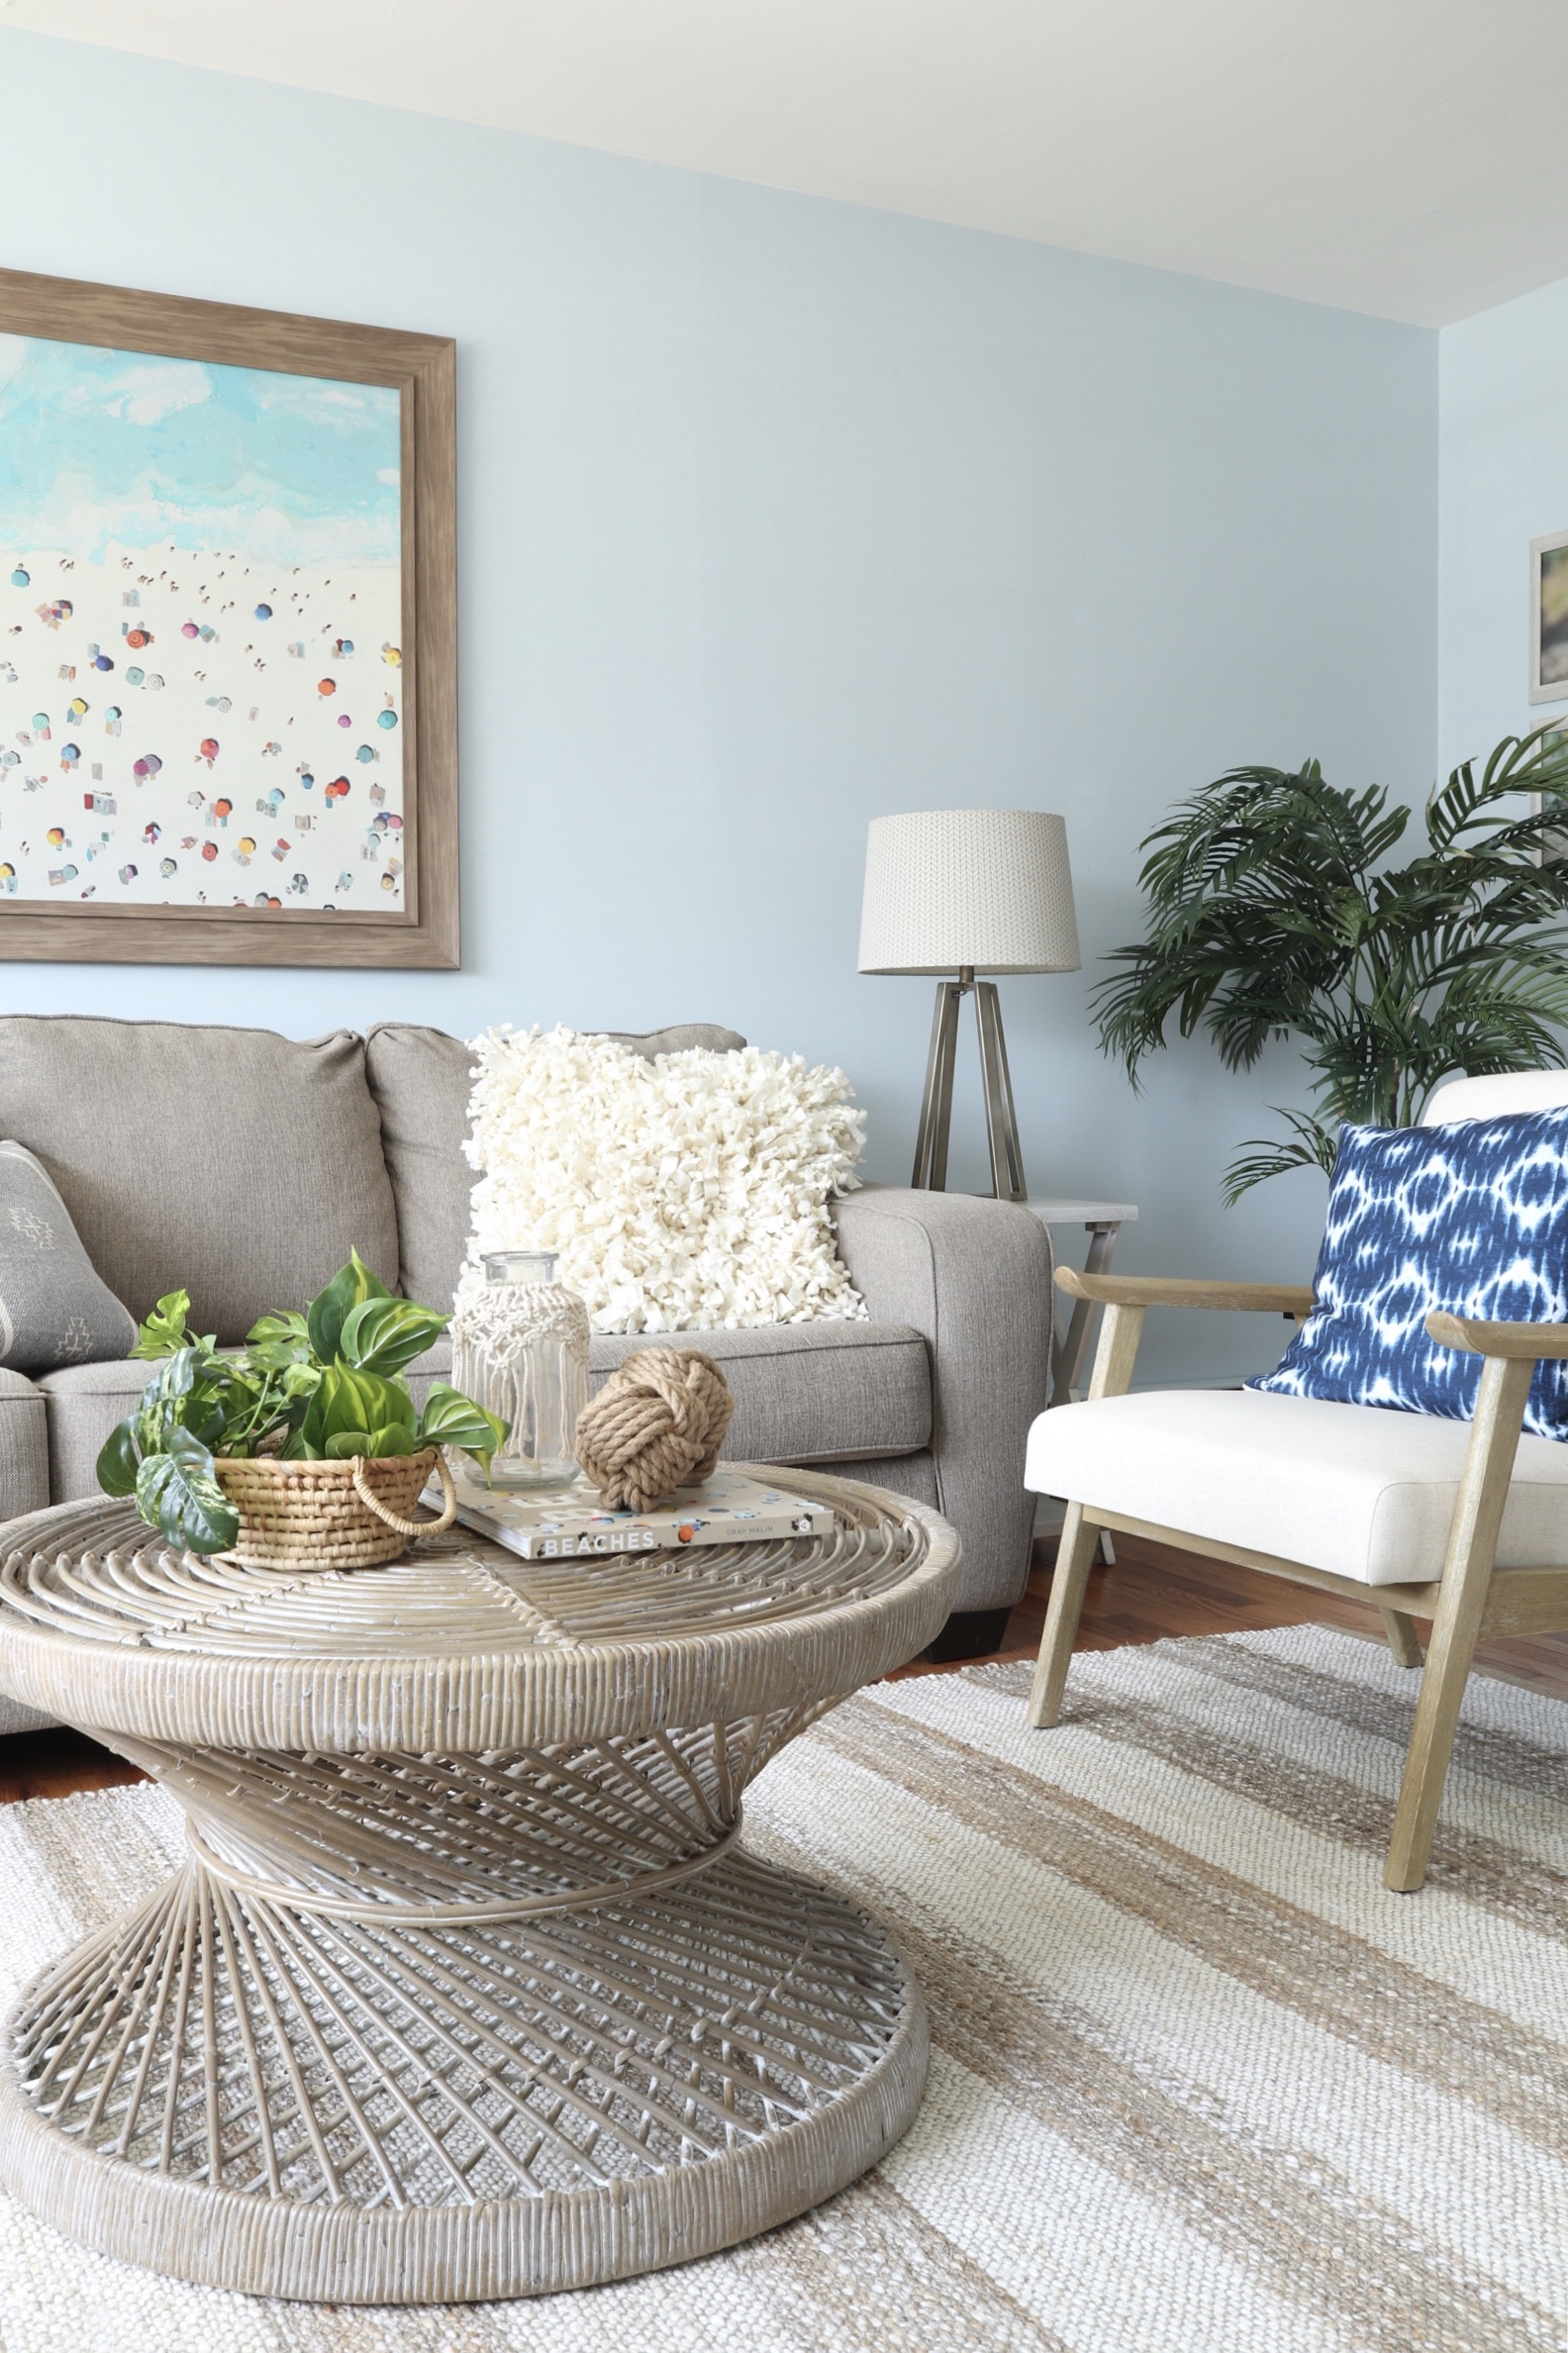 Traditional to Beach Vibes — MEREDITH LYNN DESIGNS